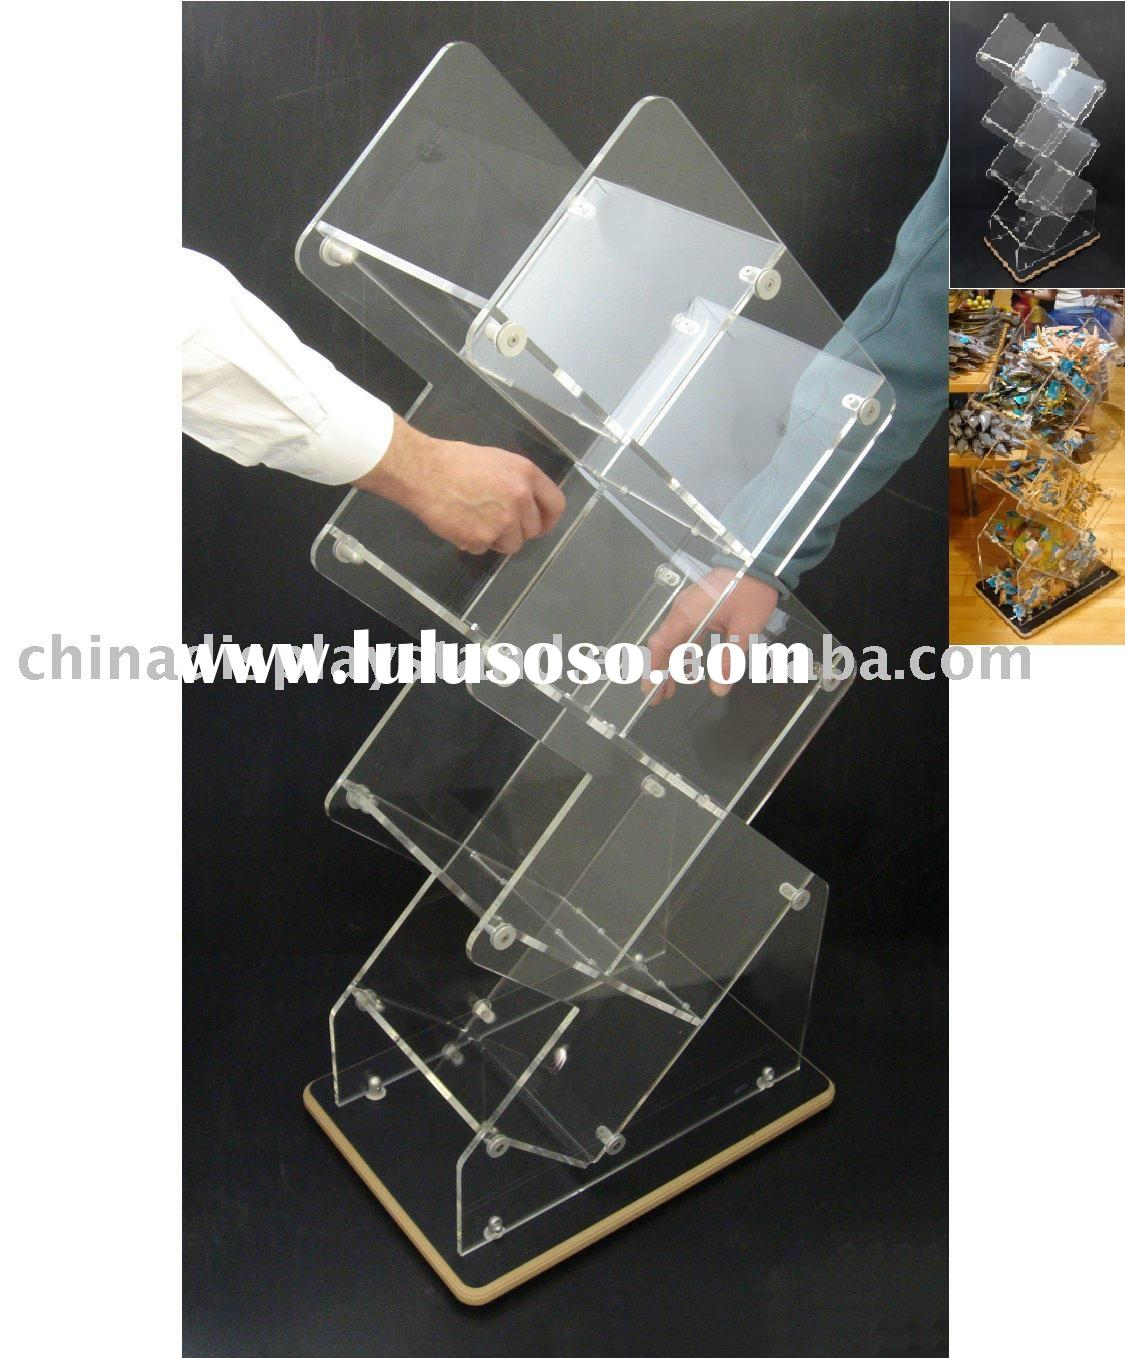 Retail Shelving Merchandiser/Acrylic shelves display stand/Acrylic Box/Acrylic shelves holder